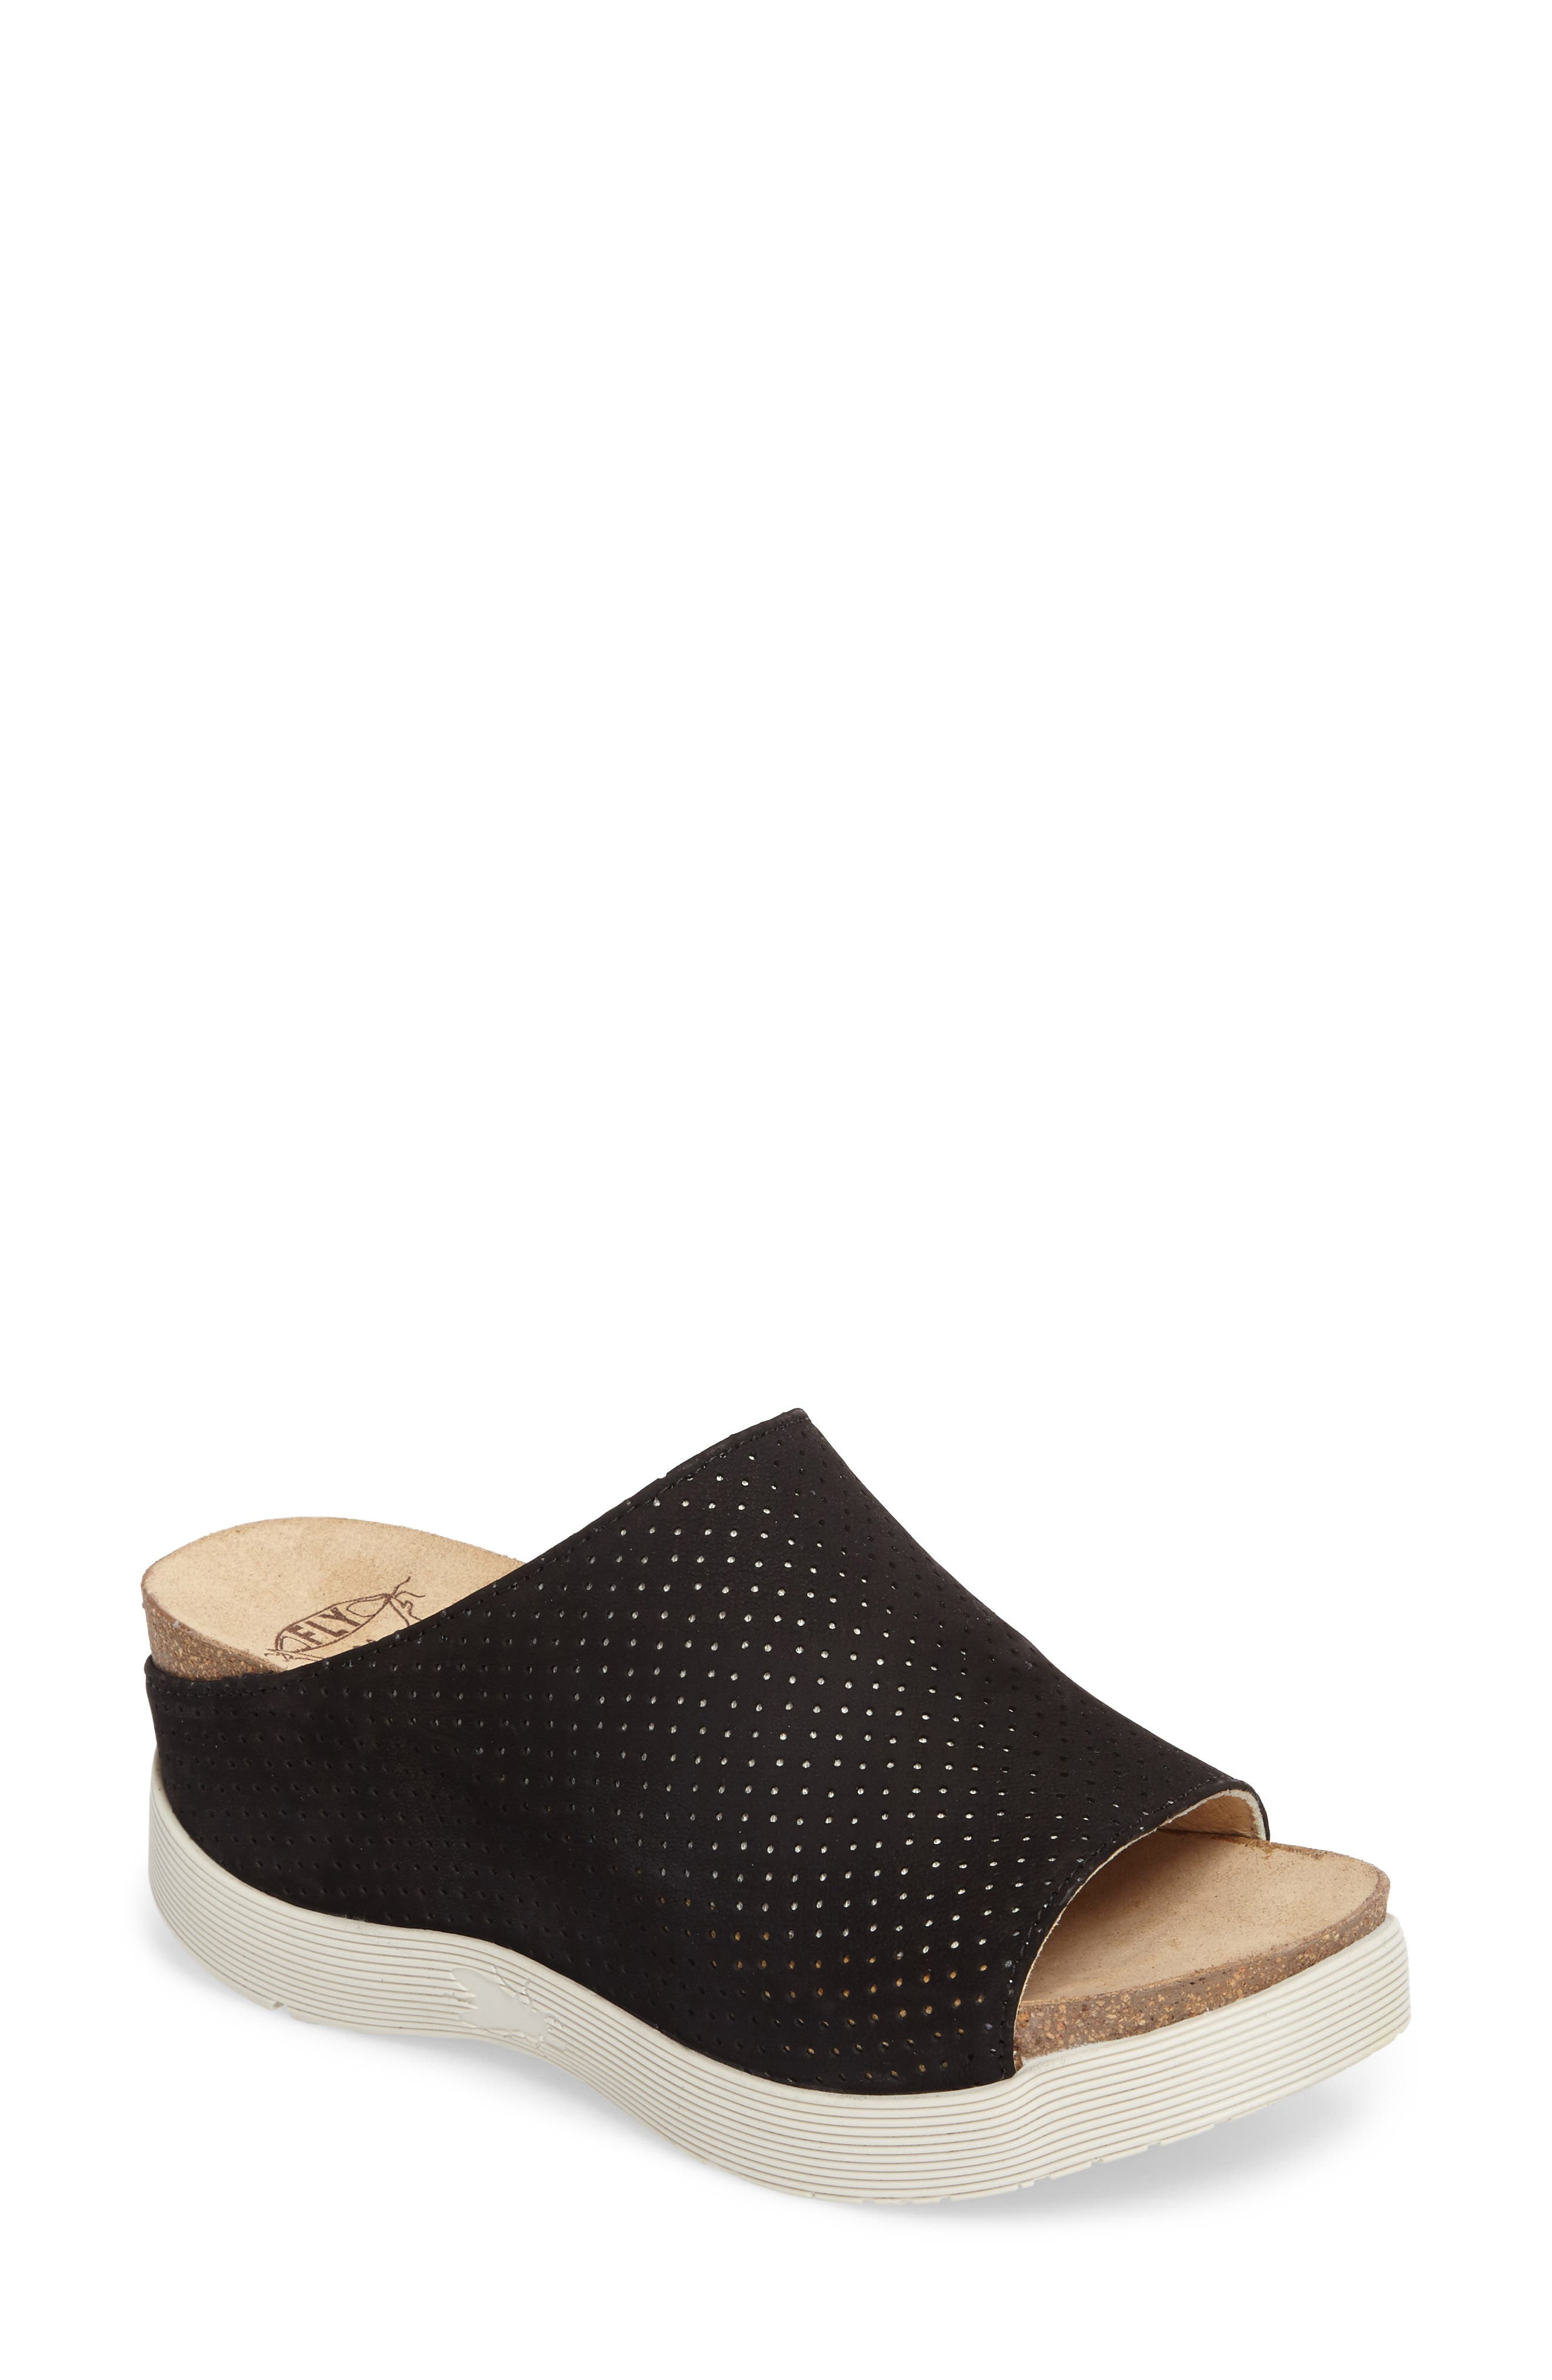 FLY LONDON, Whin Platform Sandal, Main thumbnail 1, color, BLACK CUPIDO LEATHER